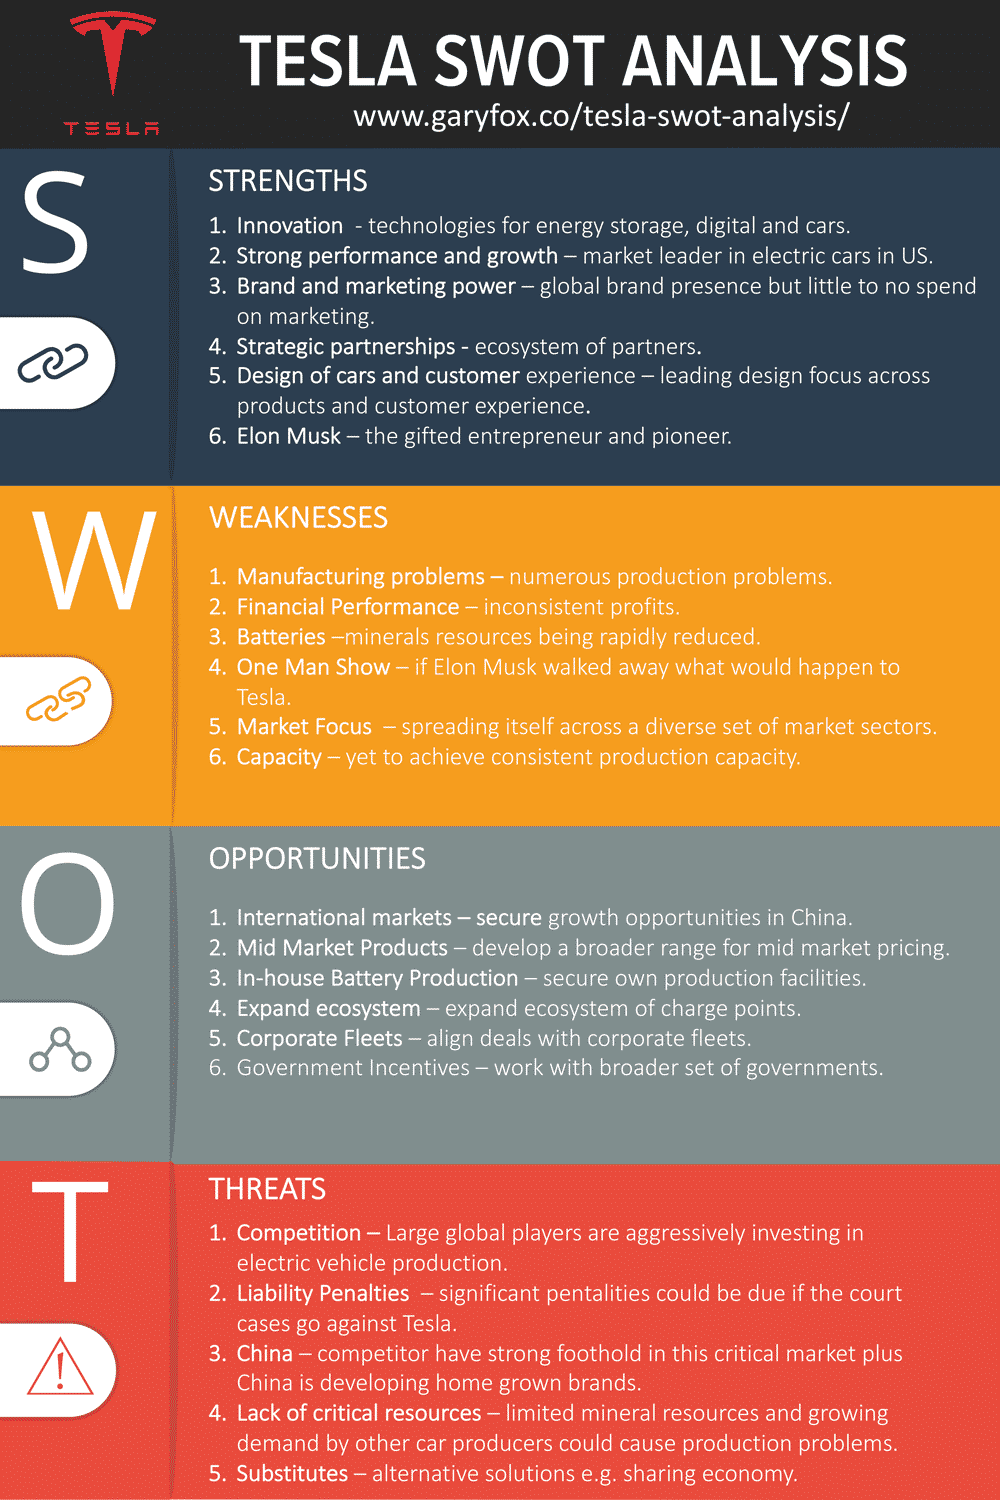 Tesla SWOT Analysis – A SEXY Car Range But What's Missing